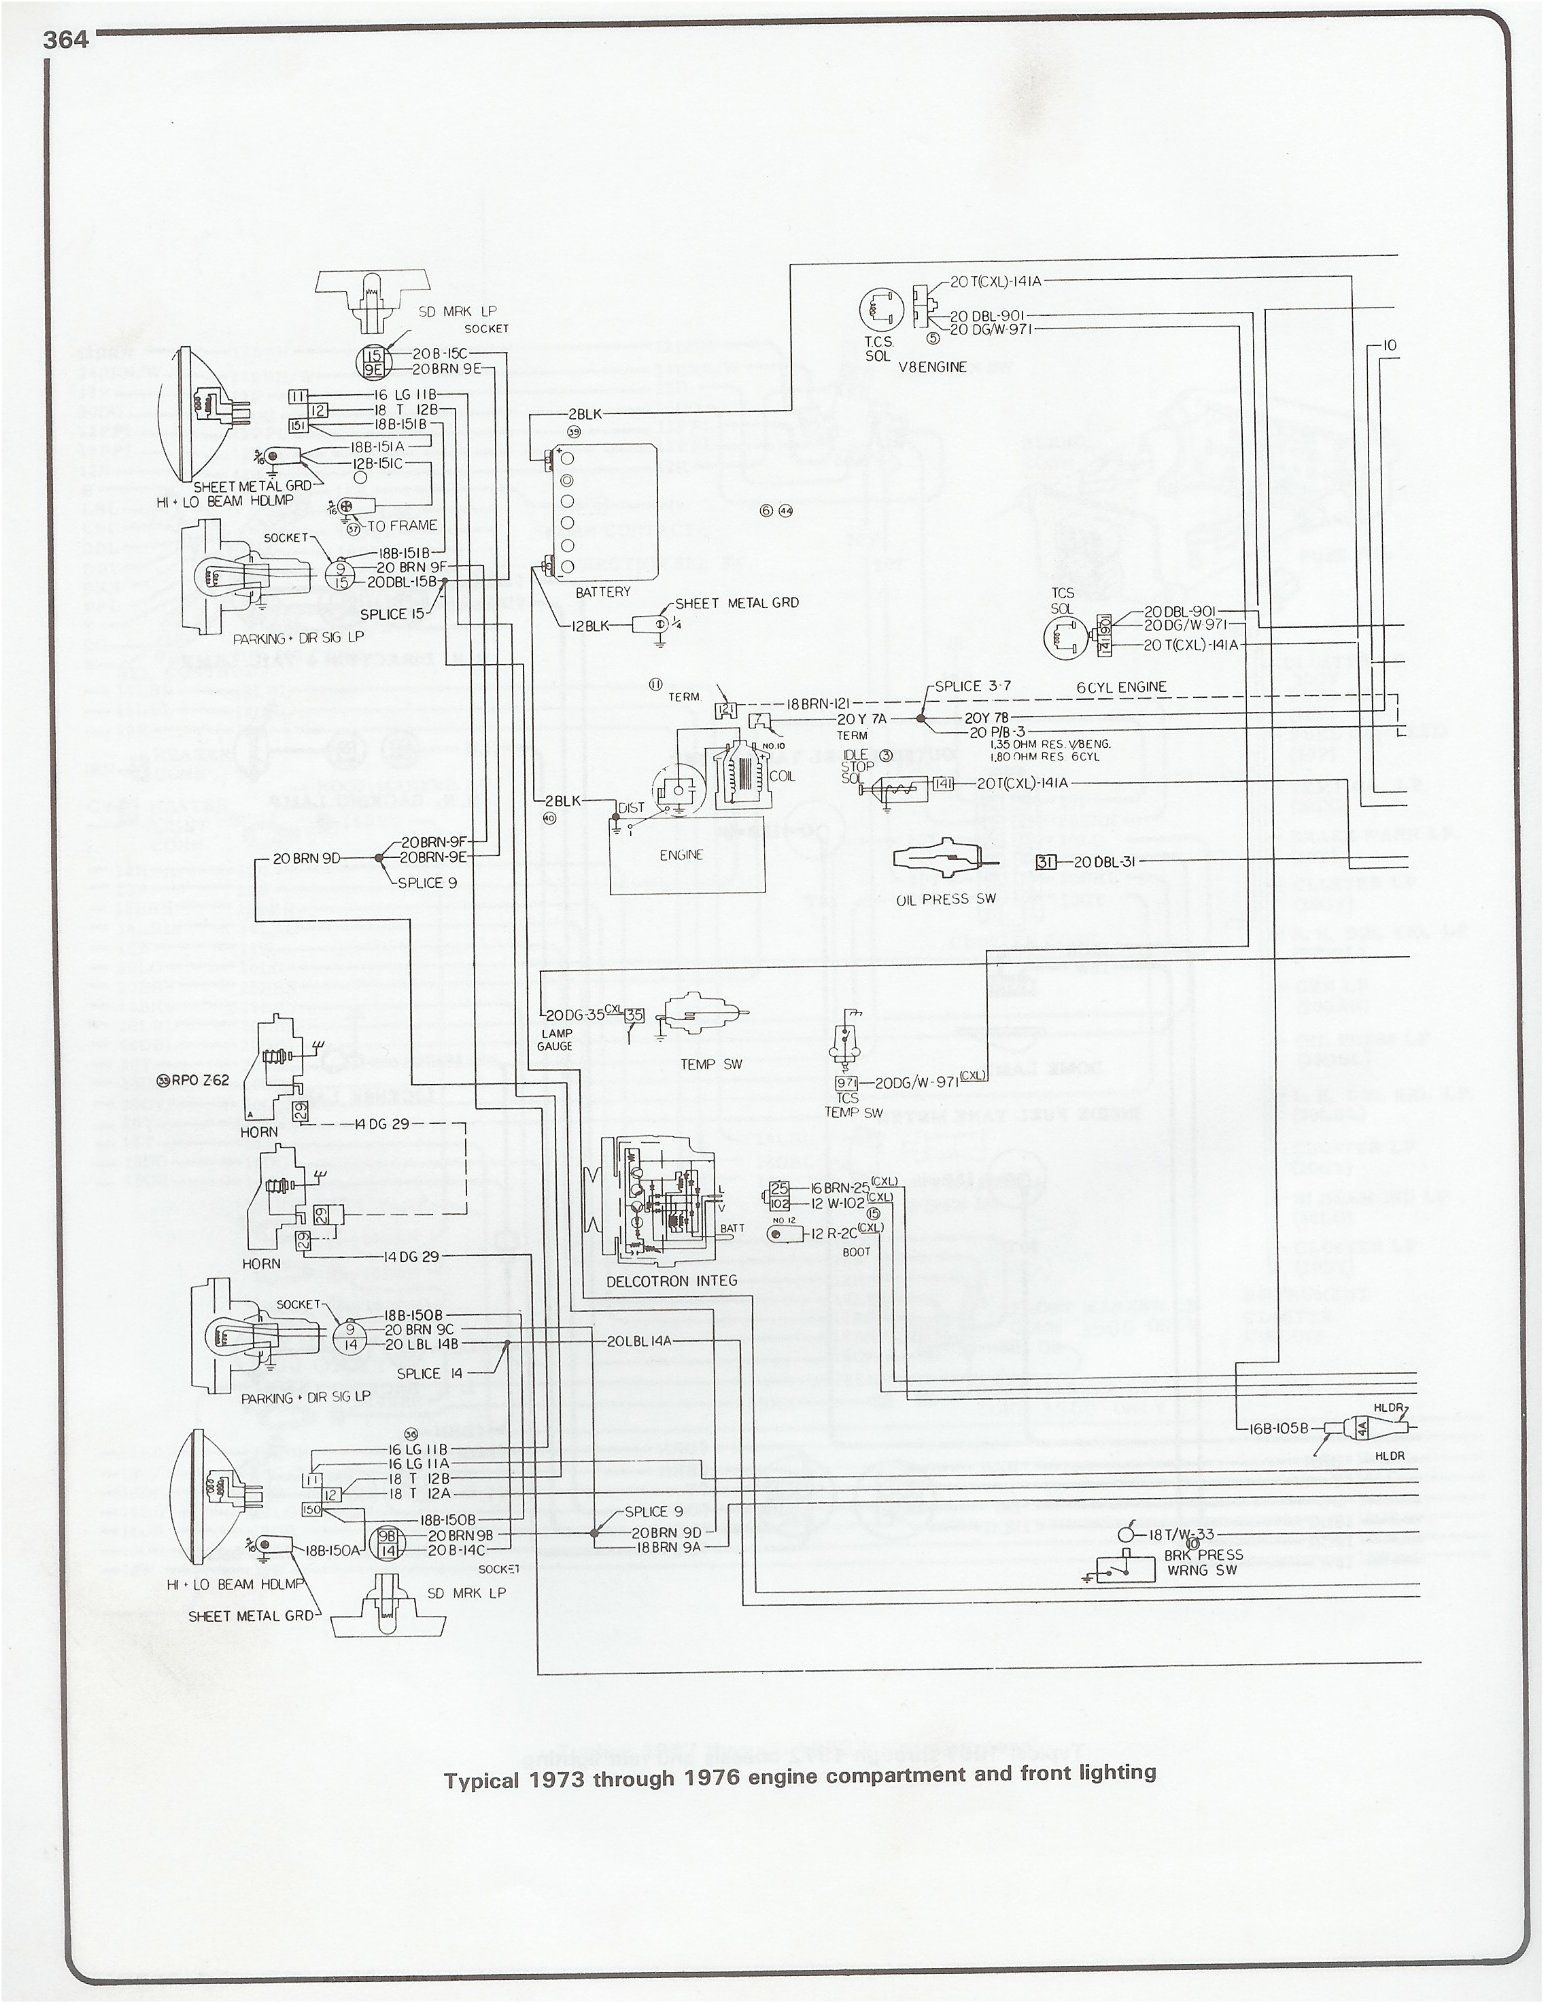 wiring diagram 1973 1976 chevy pickup chevy wiring diagram rh pinterest com Chevrolet Wiring Diagram Color Code Chevy Truck Wiring Harness